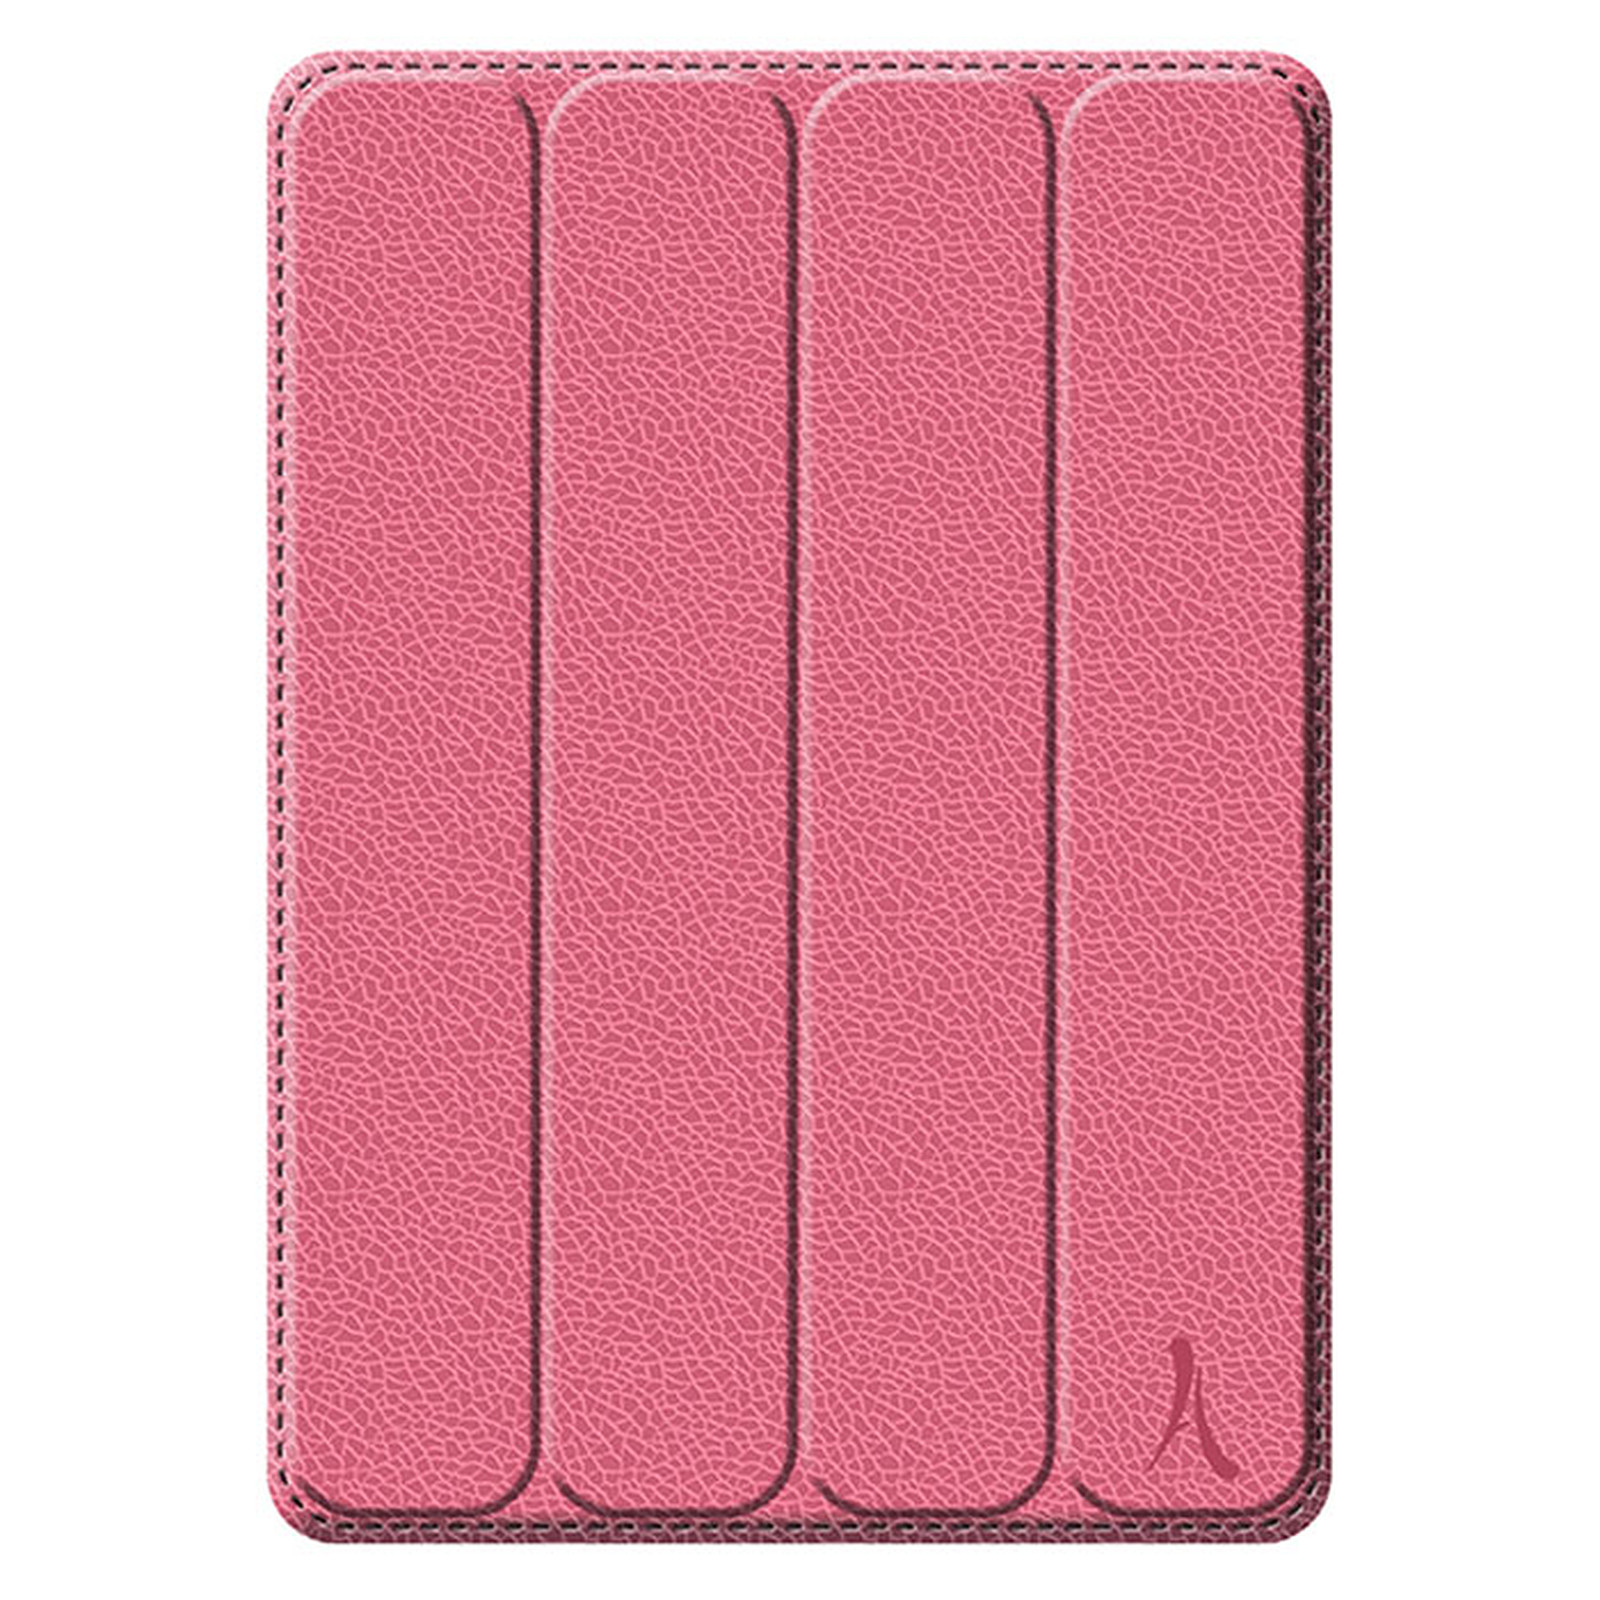 "Akashi Etui Folio iPad 2018 9.7"" Rose"